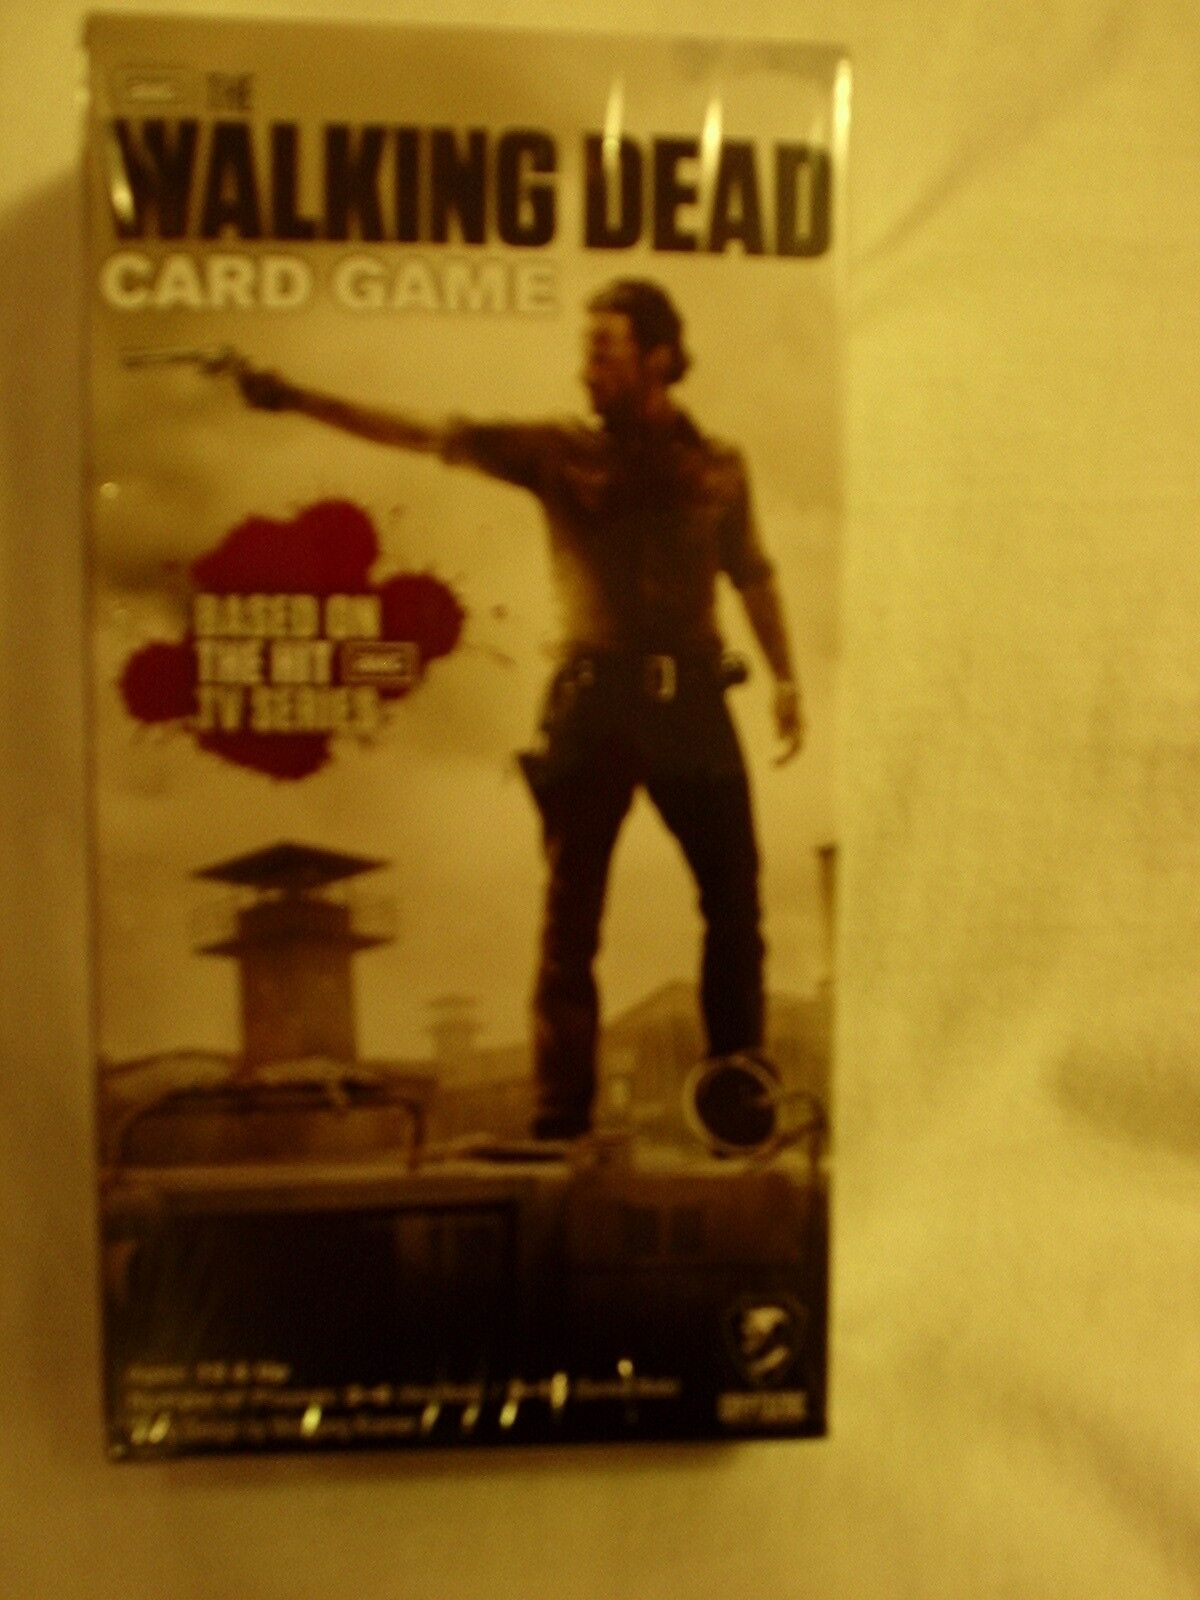 The Walking Dead Card New Game.  New Card and sealed 851066